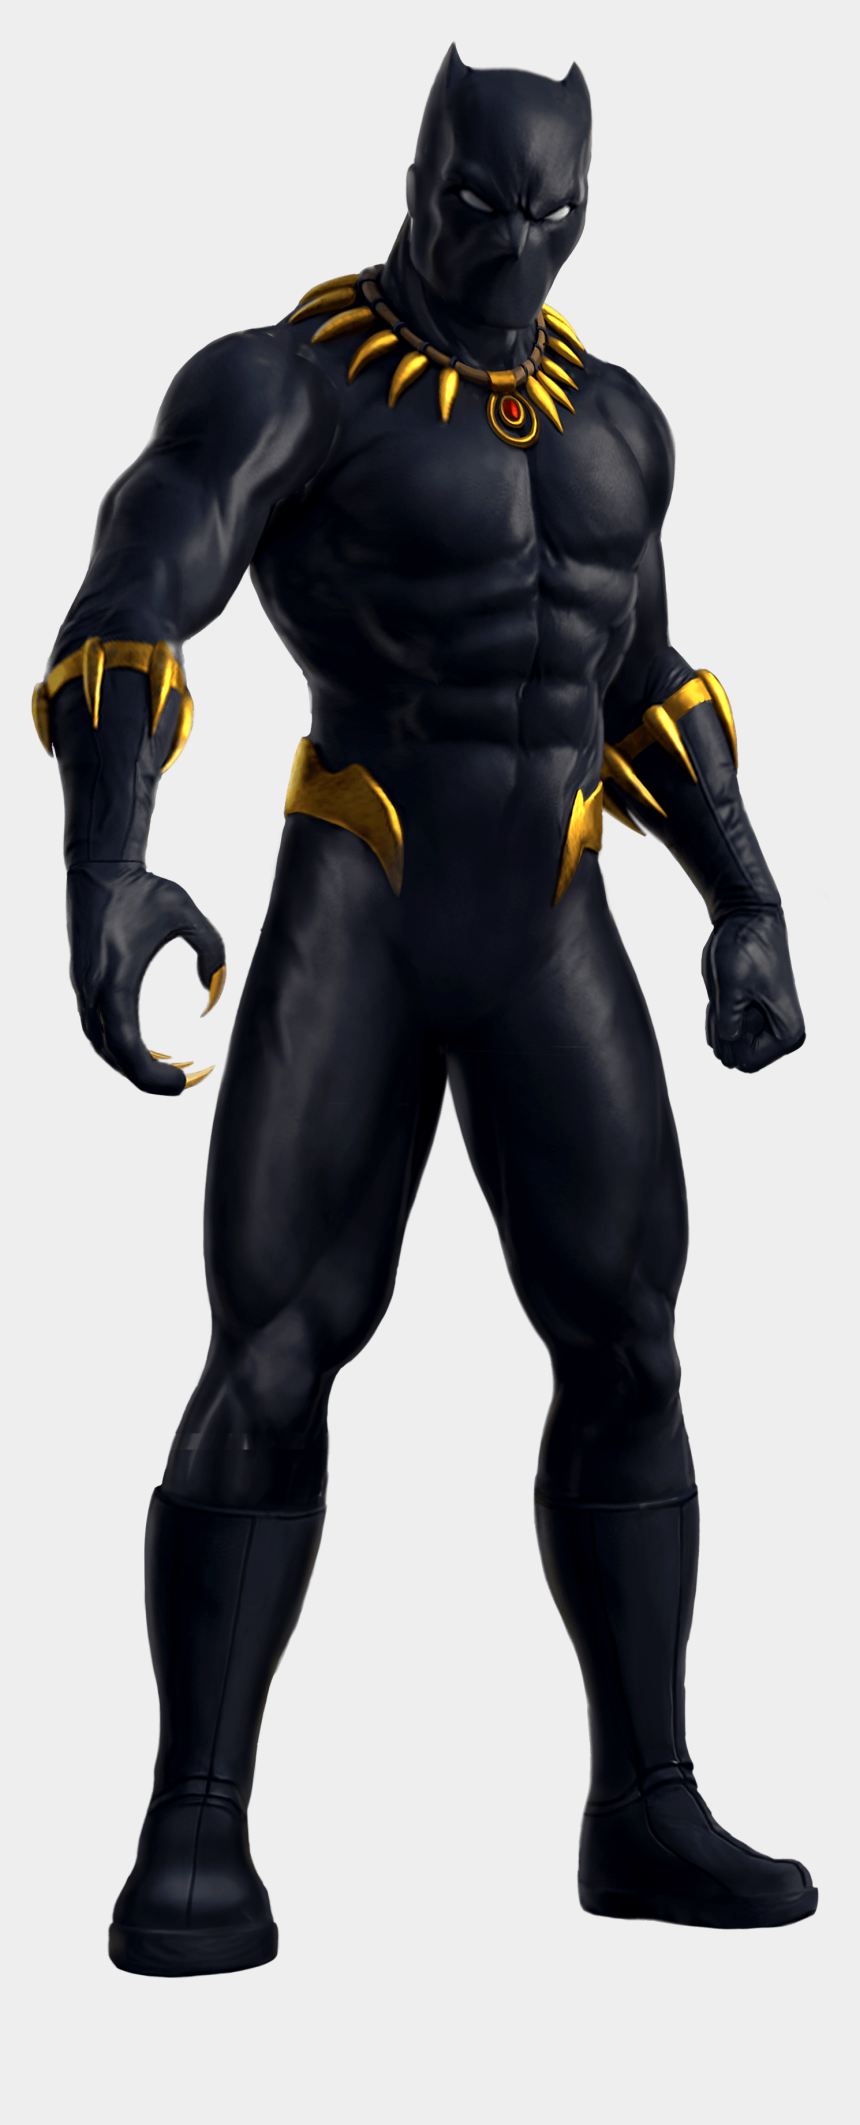 black panther mask clipart, Cartoons - Black Panther